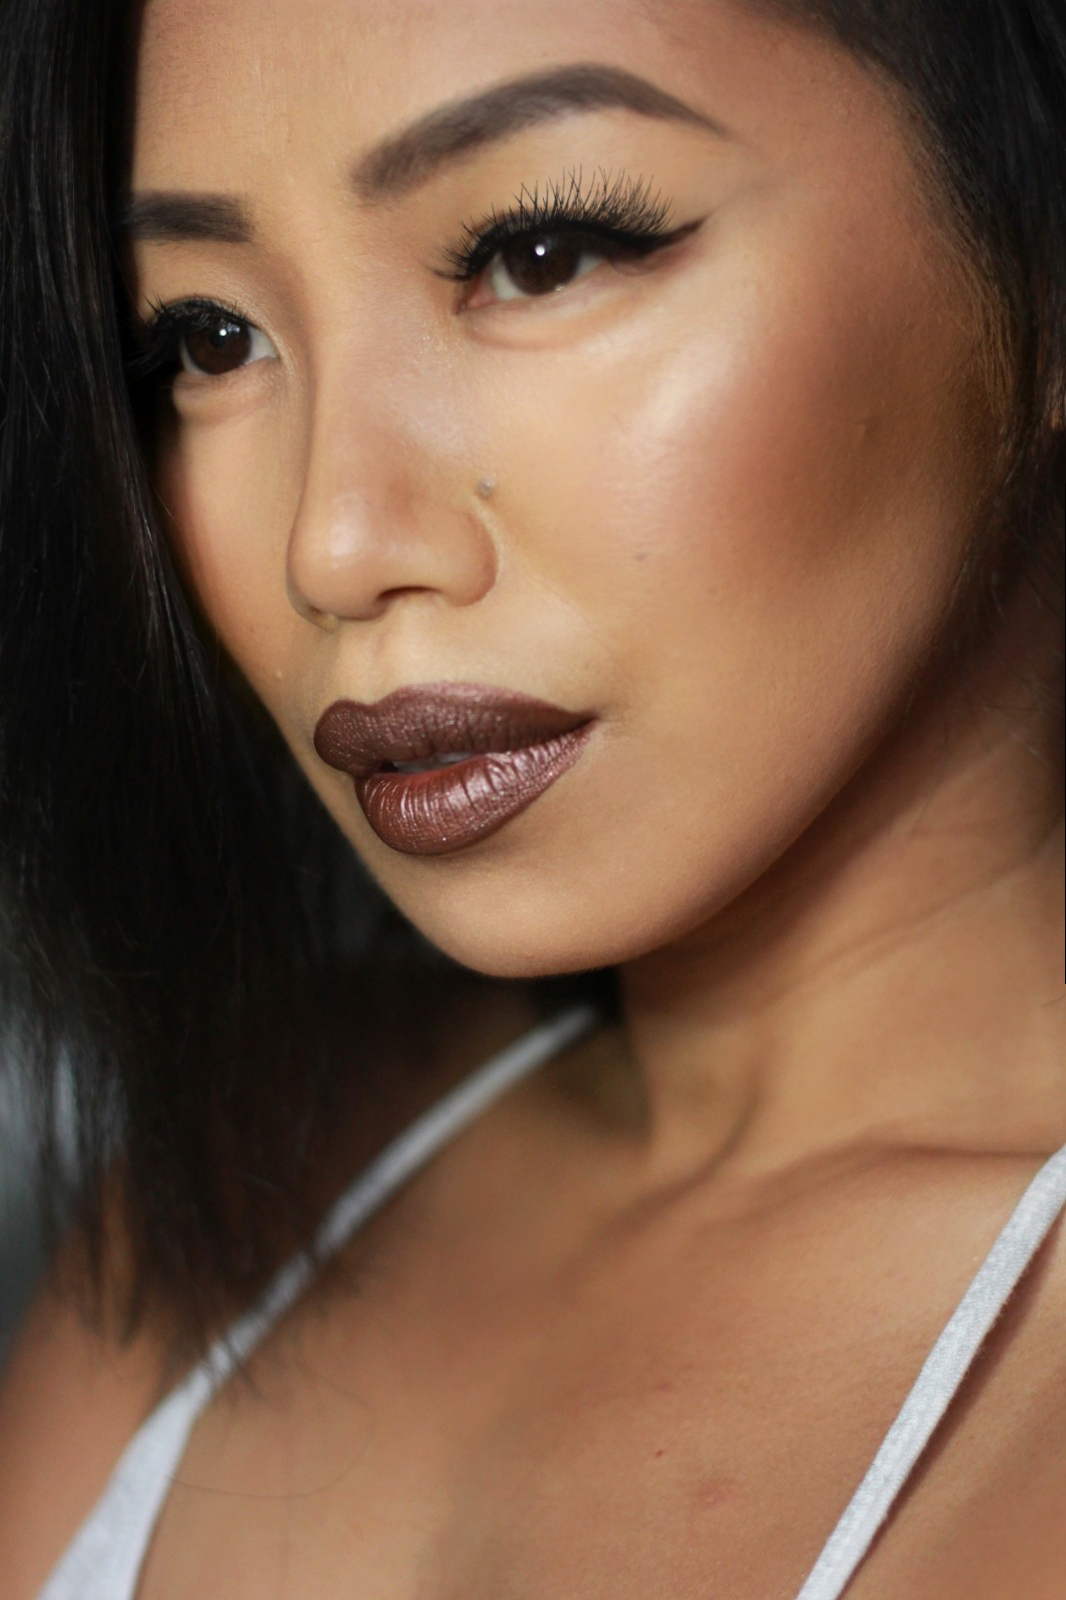 Wrap your lips in high-impact metallic color with Liquid Suede Metallic Matte, a striking new lip inspired by our best-selling Liquid Suede Cream Lipstick. Available in 12 statement-making shades, these shockingly creamy lippies deliver instant dimension and incredible color payoff. In other words, get ready to slay. Neat Nude